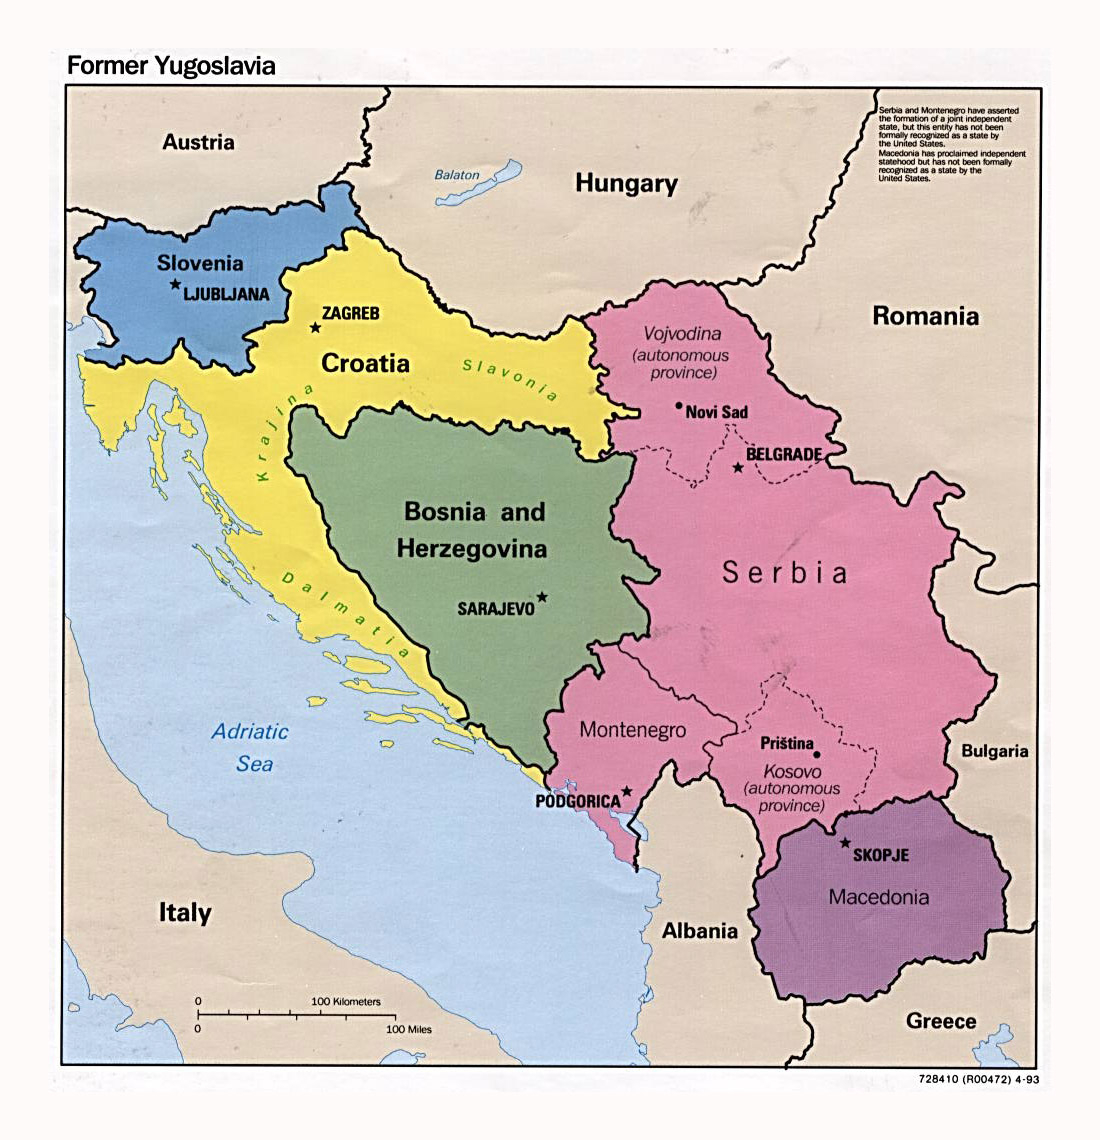 detailed-political-map-of-the-former-yugoslavia-1983